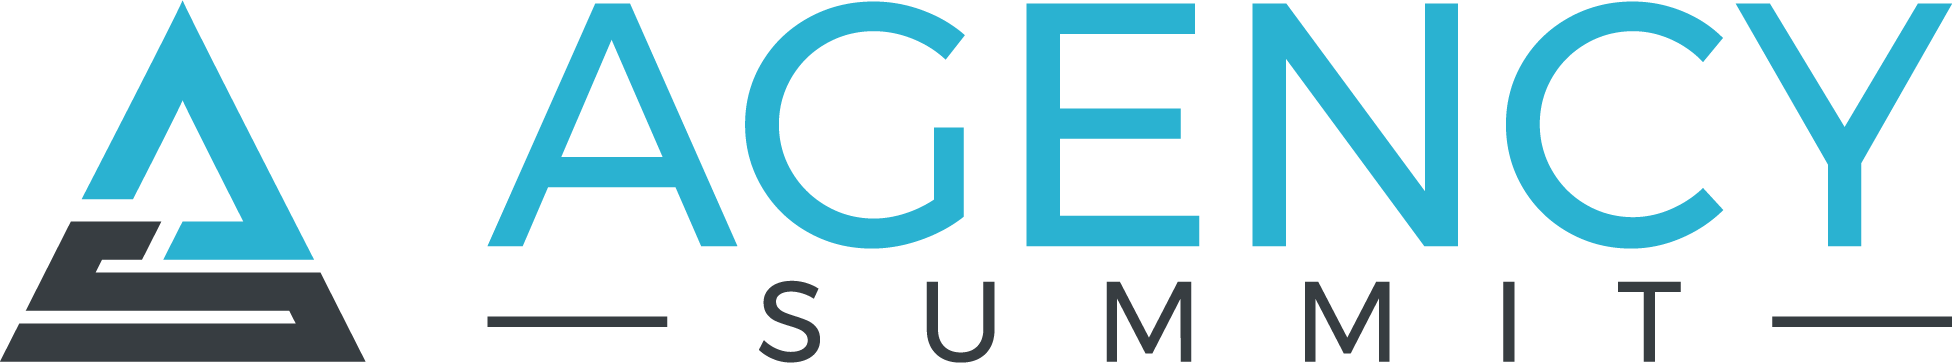 The Agency Summit